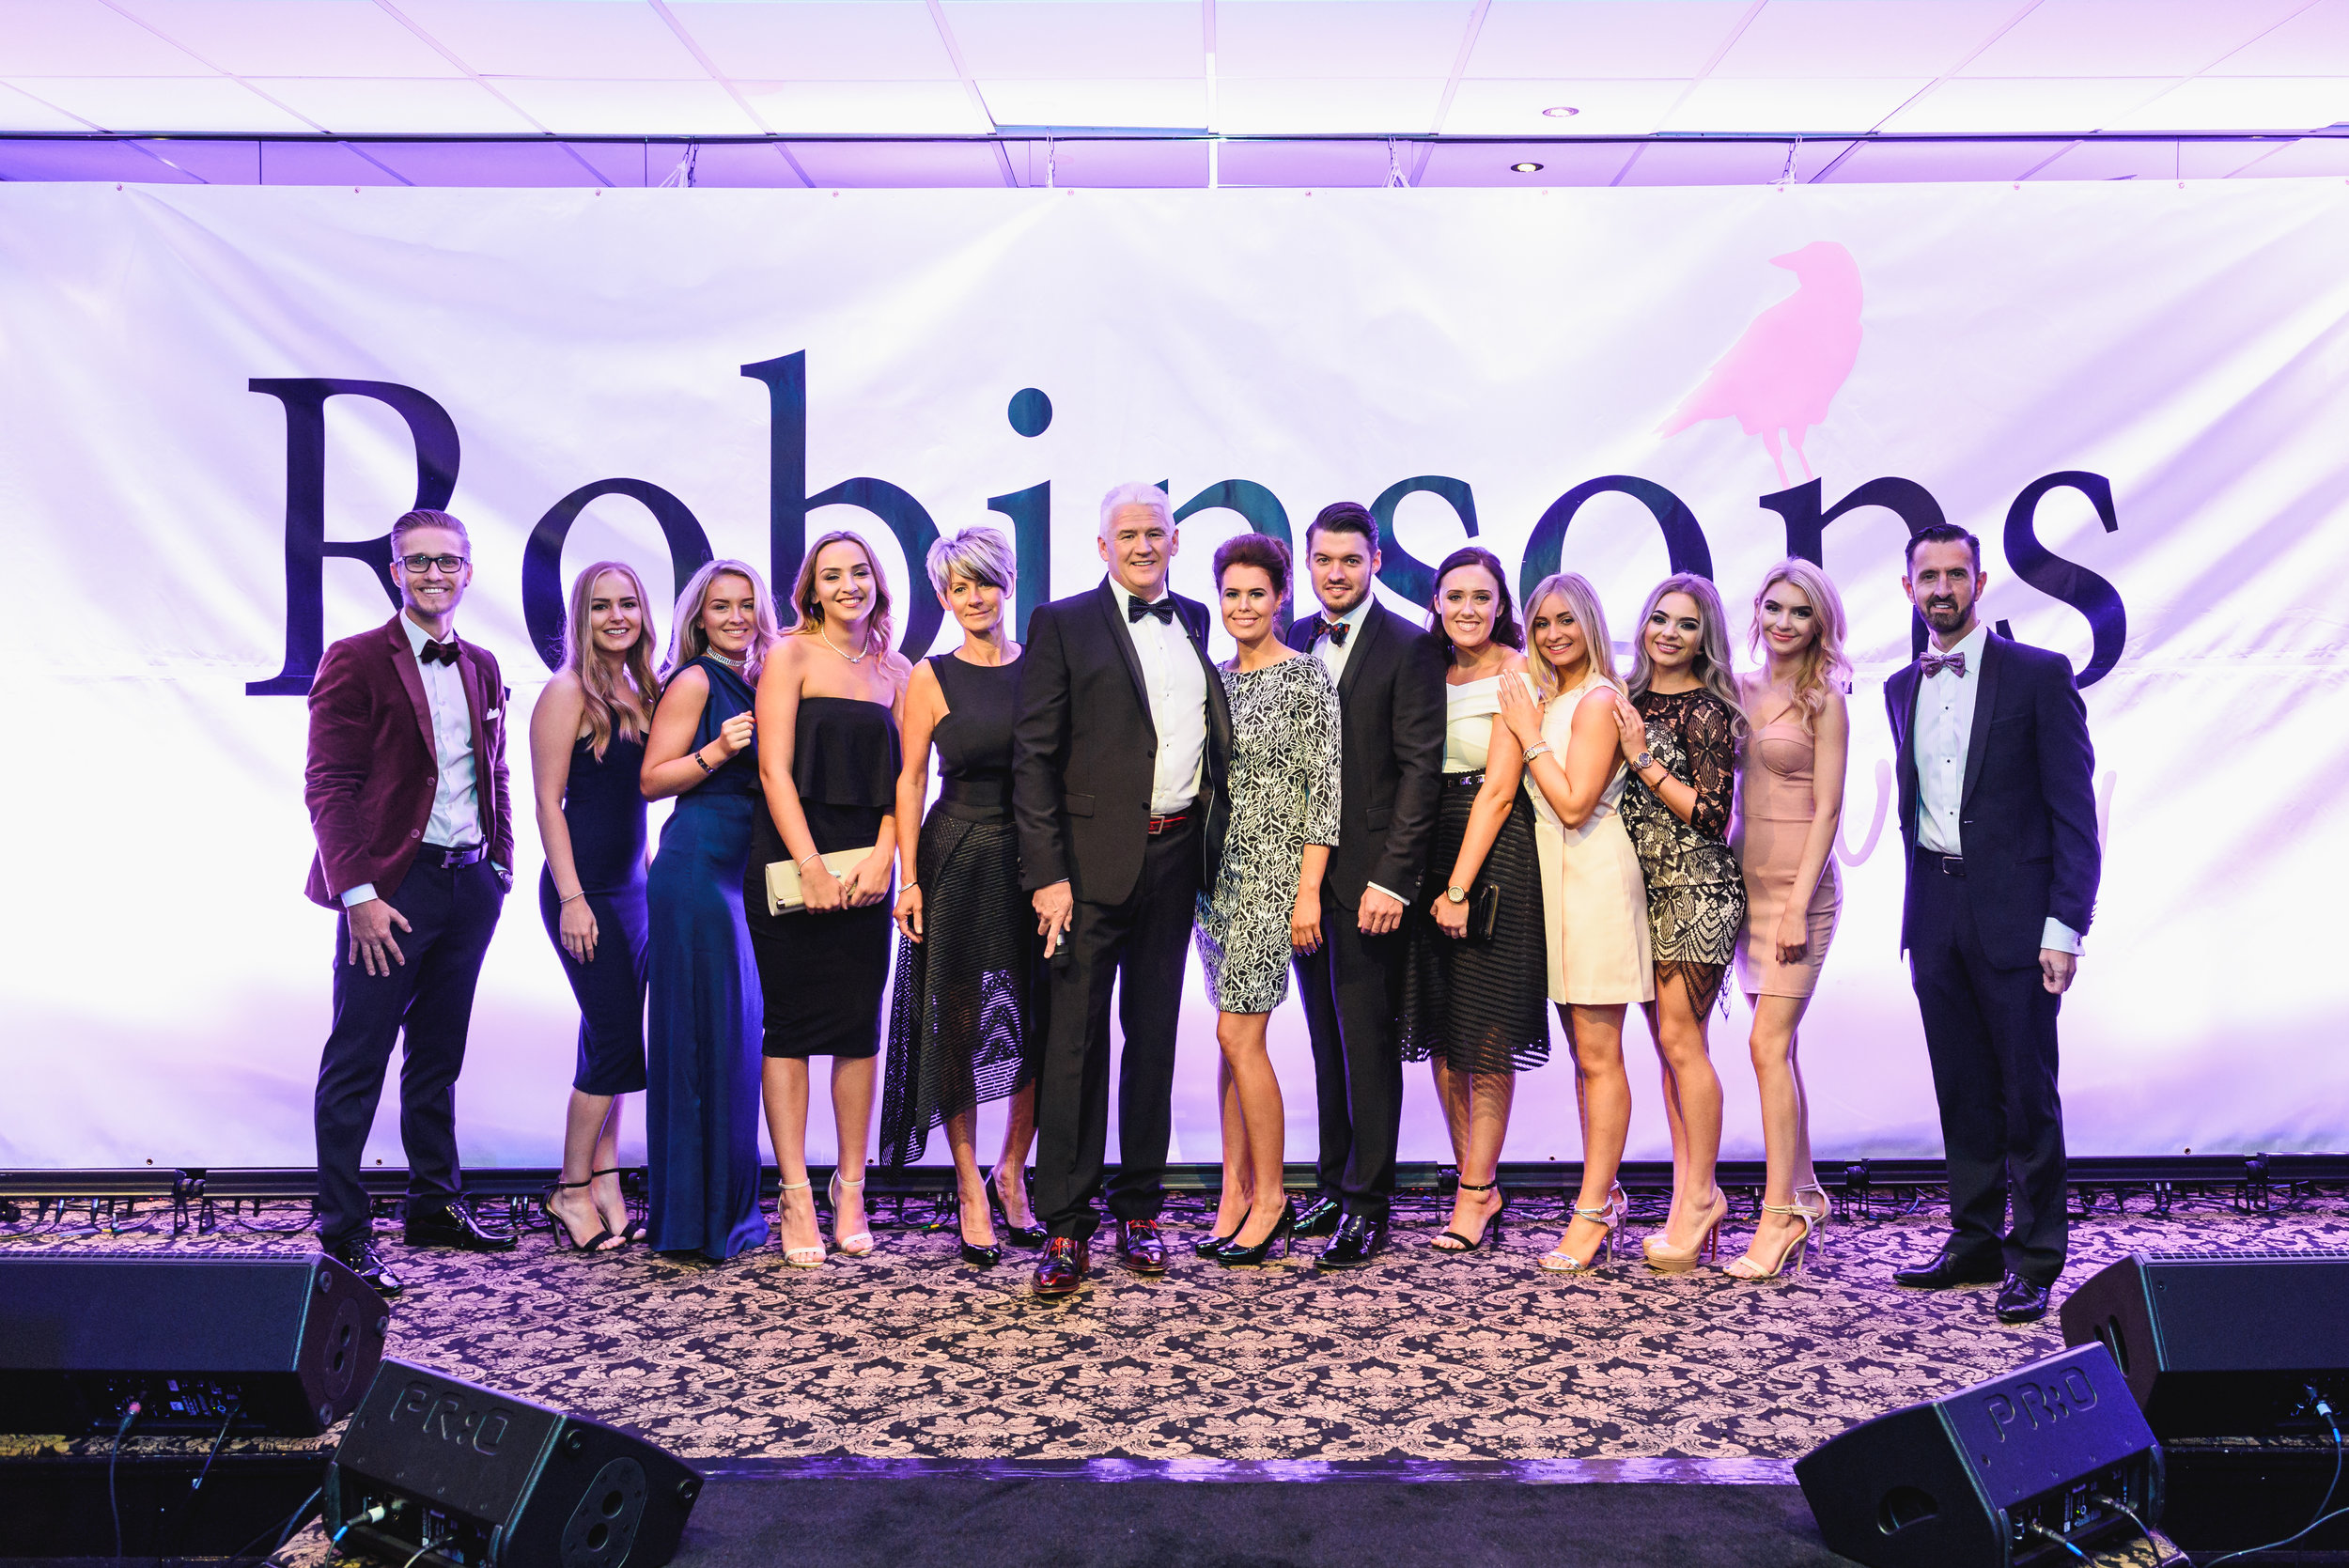 Robinsons of Bawtry Annual Charity Fashion Show  2016